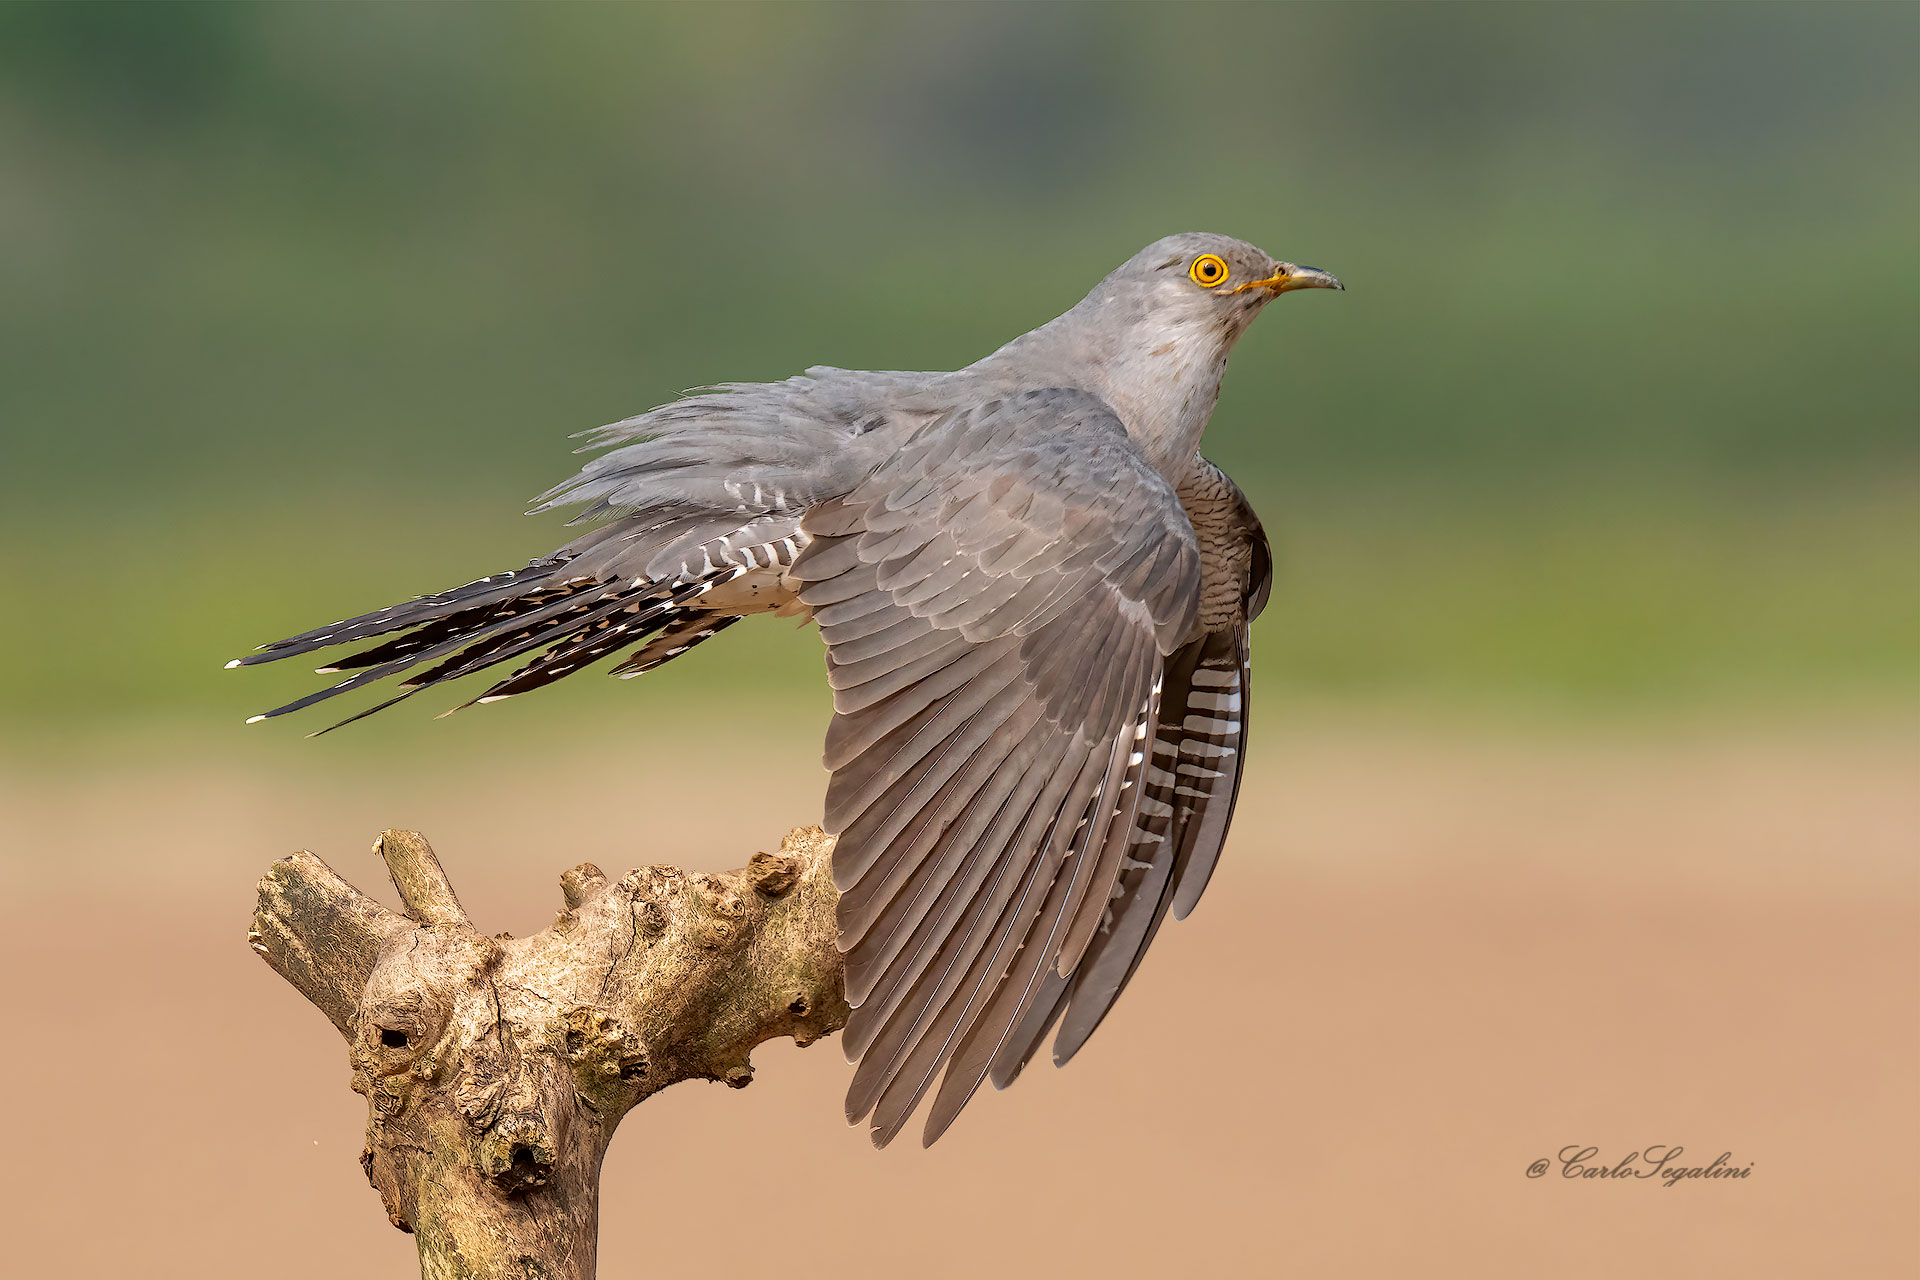 The Cuckoo just landed...